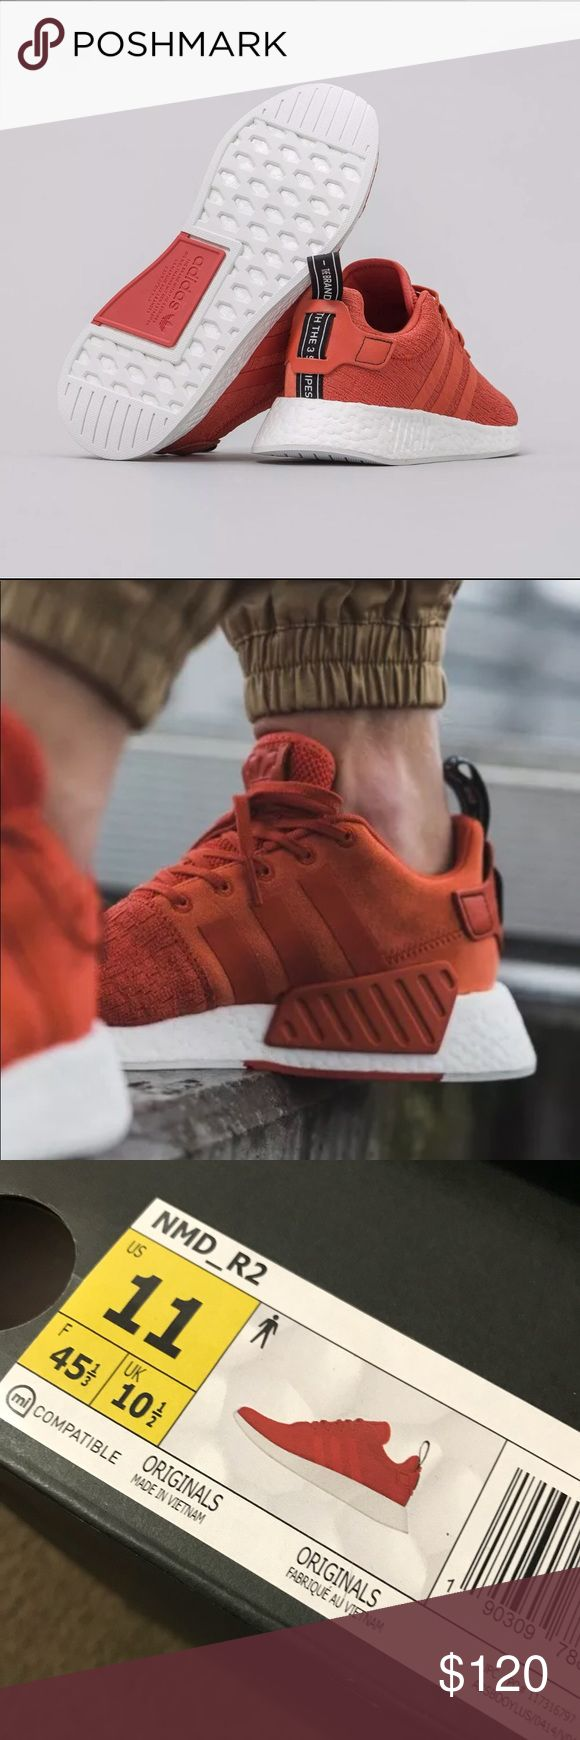 New Adidas NMD R2 • Brand new, comes with the new box • PRESS ADD TO BUNDLE and I'll offer a FREE SHIPPING • Size 11 in mens • Very comfortable can be used when going out or when working out adidas Shoes Sneakers